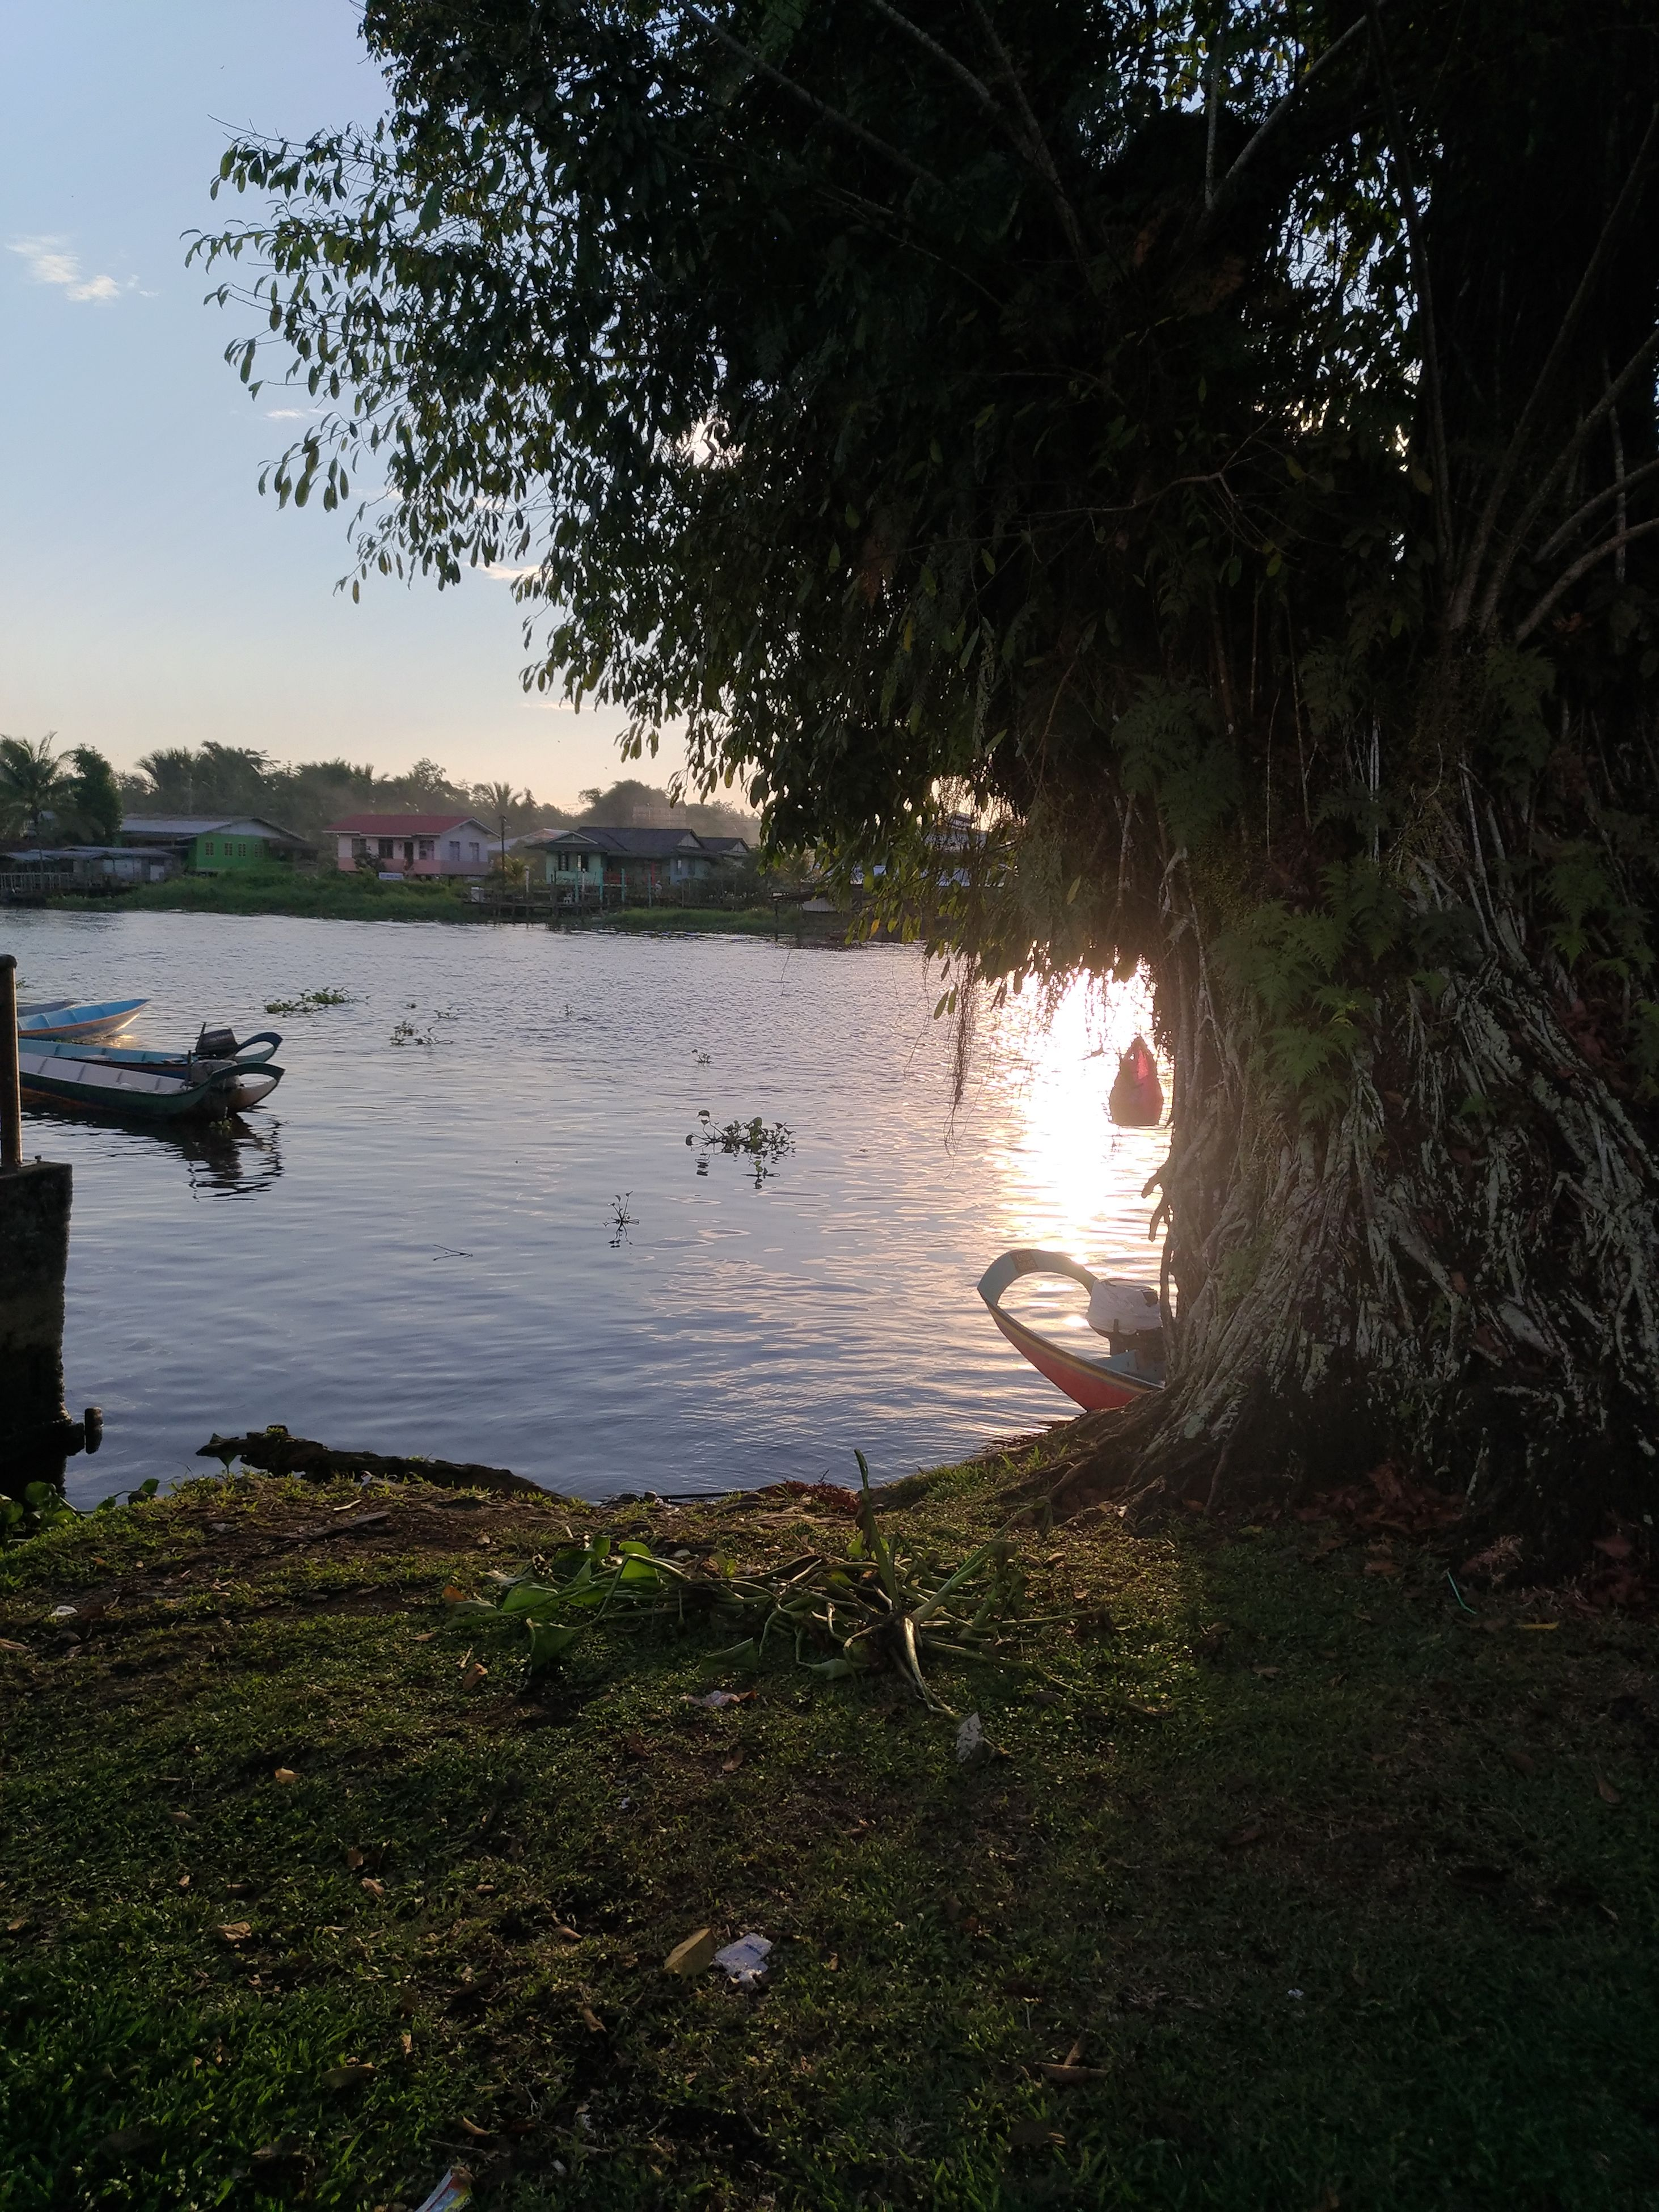 lake, water, tree, nature, growth, bird, no people, beauty in nature, outdoors, grass, animal themes, plant, animals in the wild, scenics, day, sunset, swimming, swan, sky